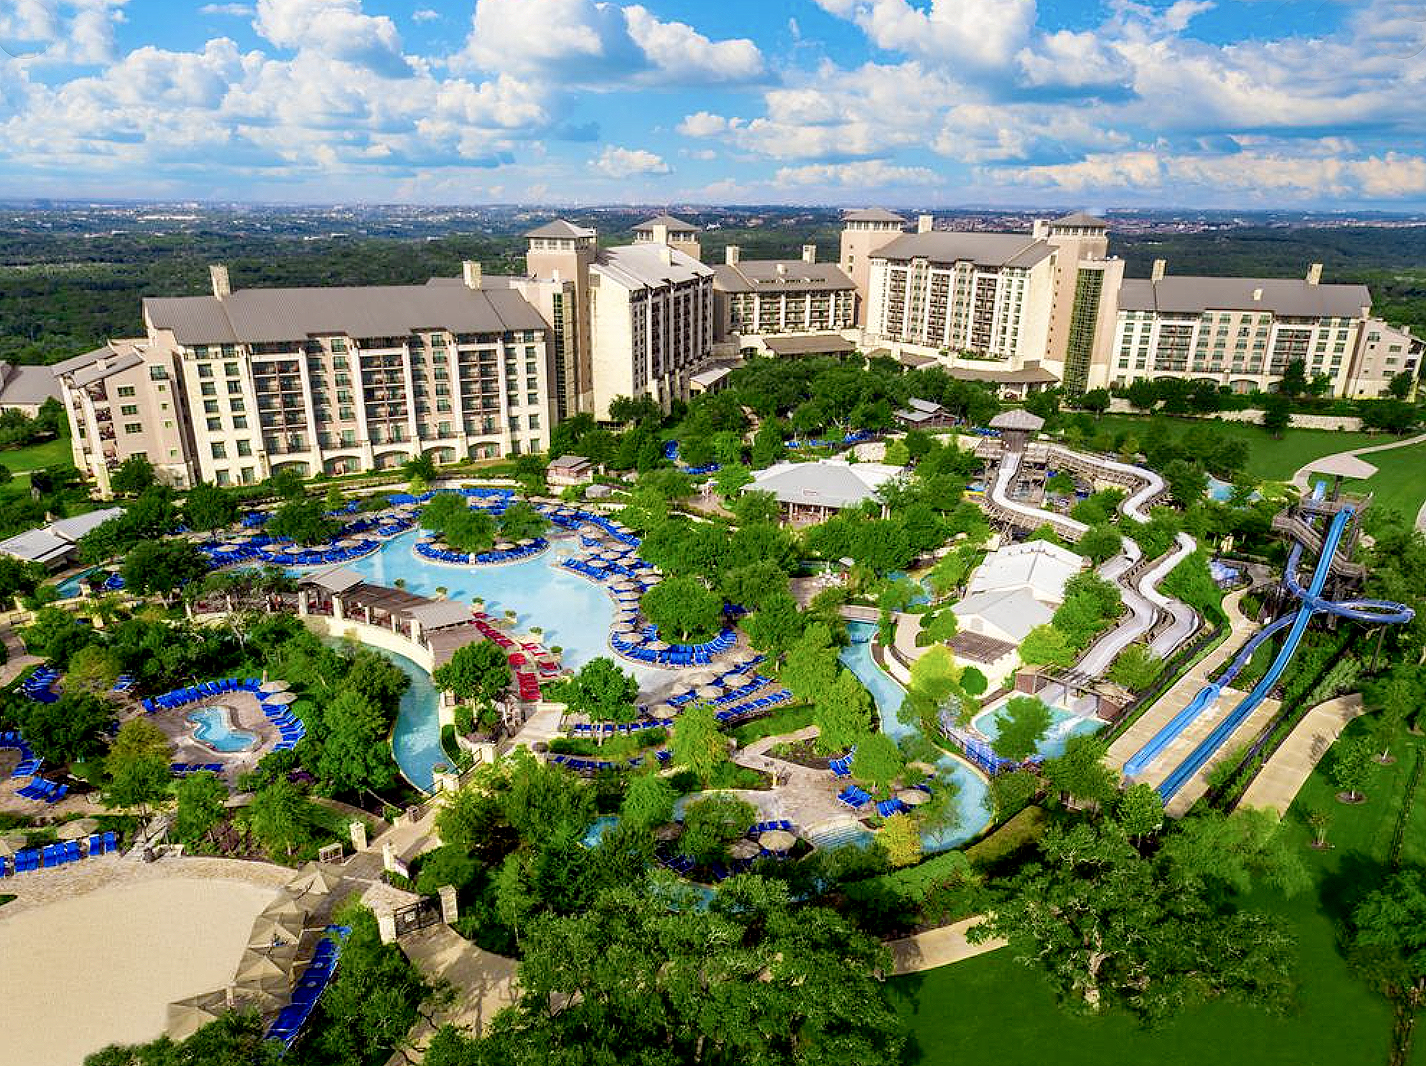 The Best Hotels with WaterParks